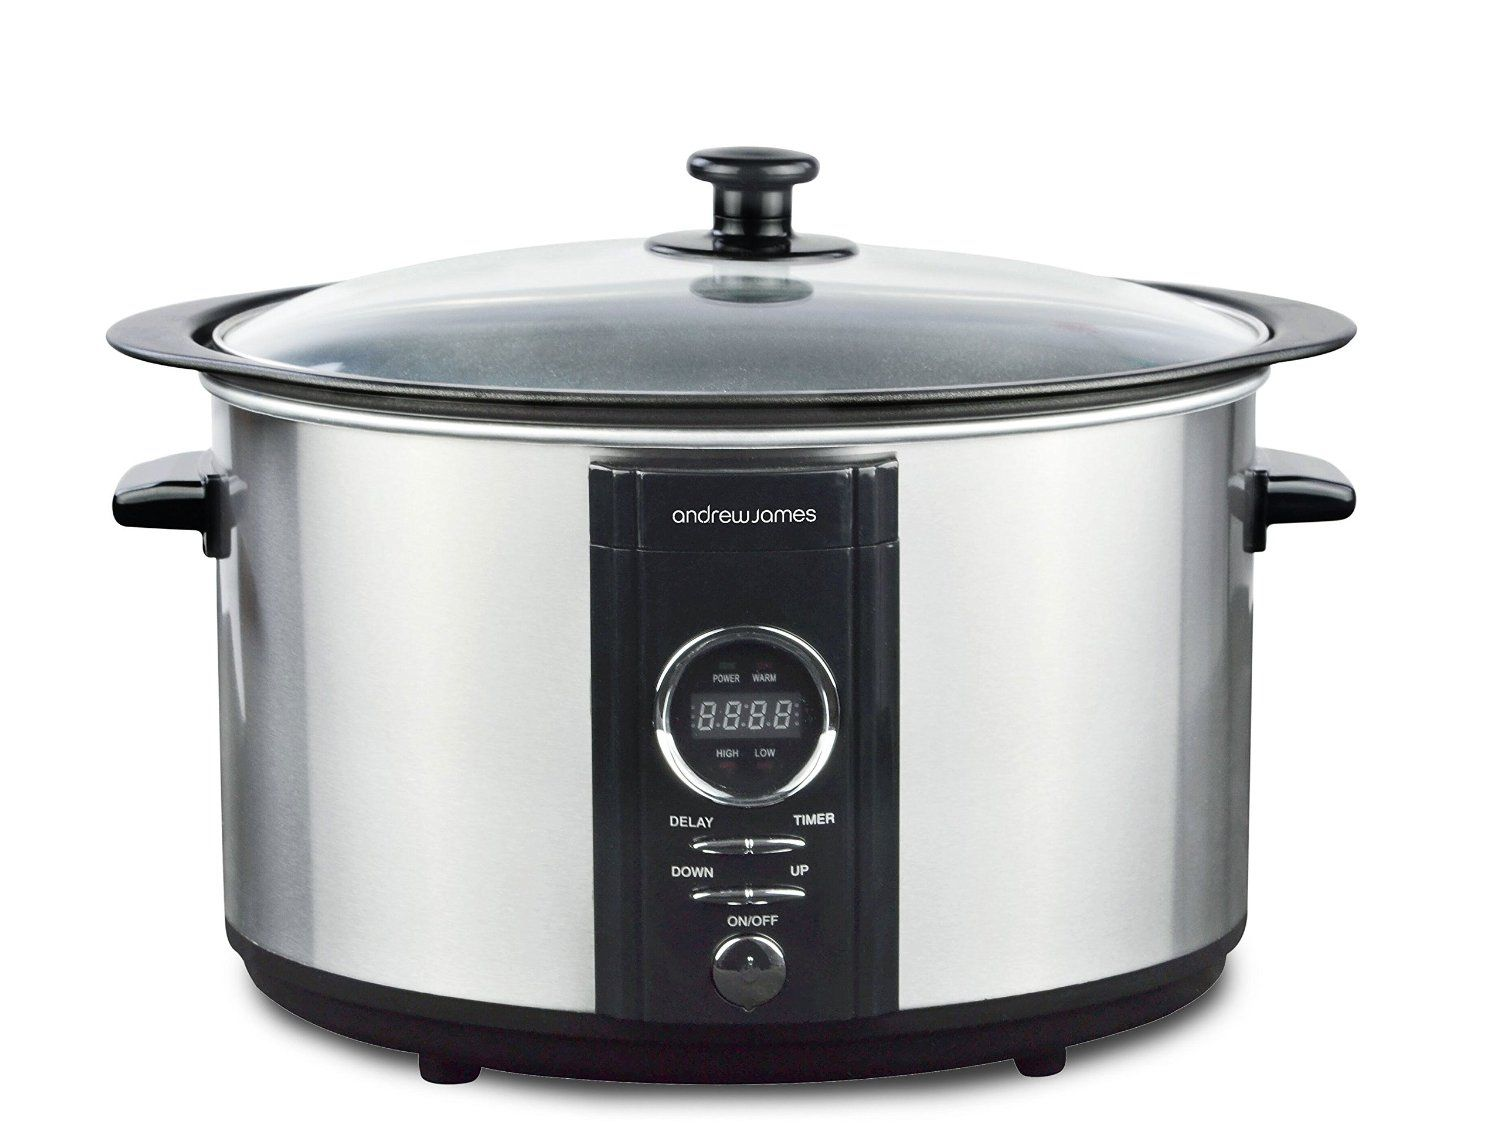 andrew james 3 5l sizzle to simmer 2 in 1 digital slow cooker in andrew james 3 5l sizzle to simmer 2 in 1 digital slow cooker in      rh   pinterest com